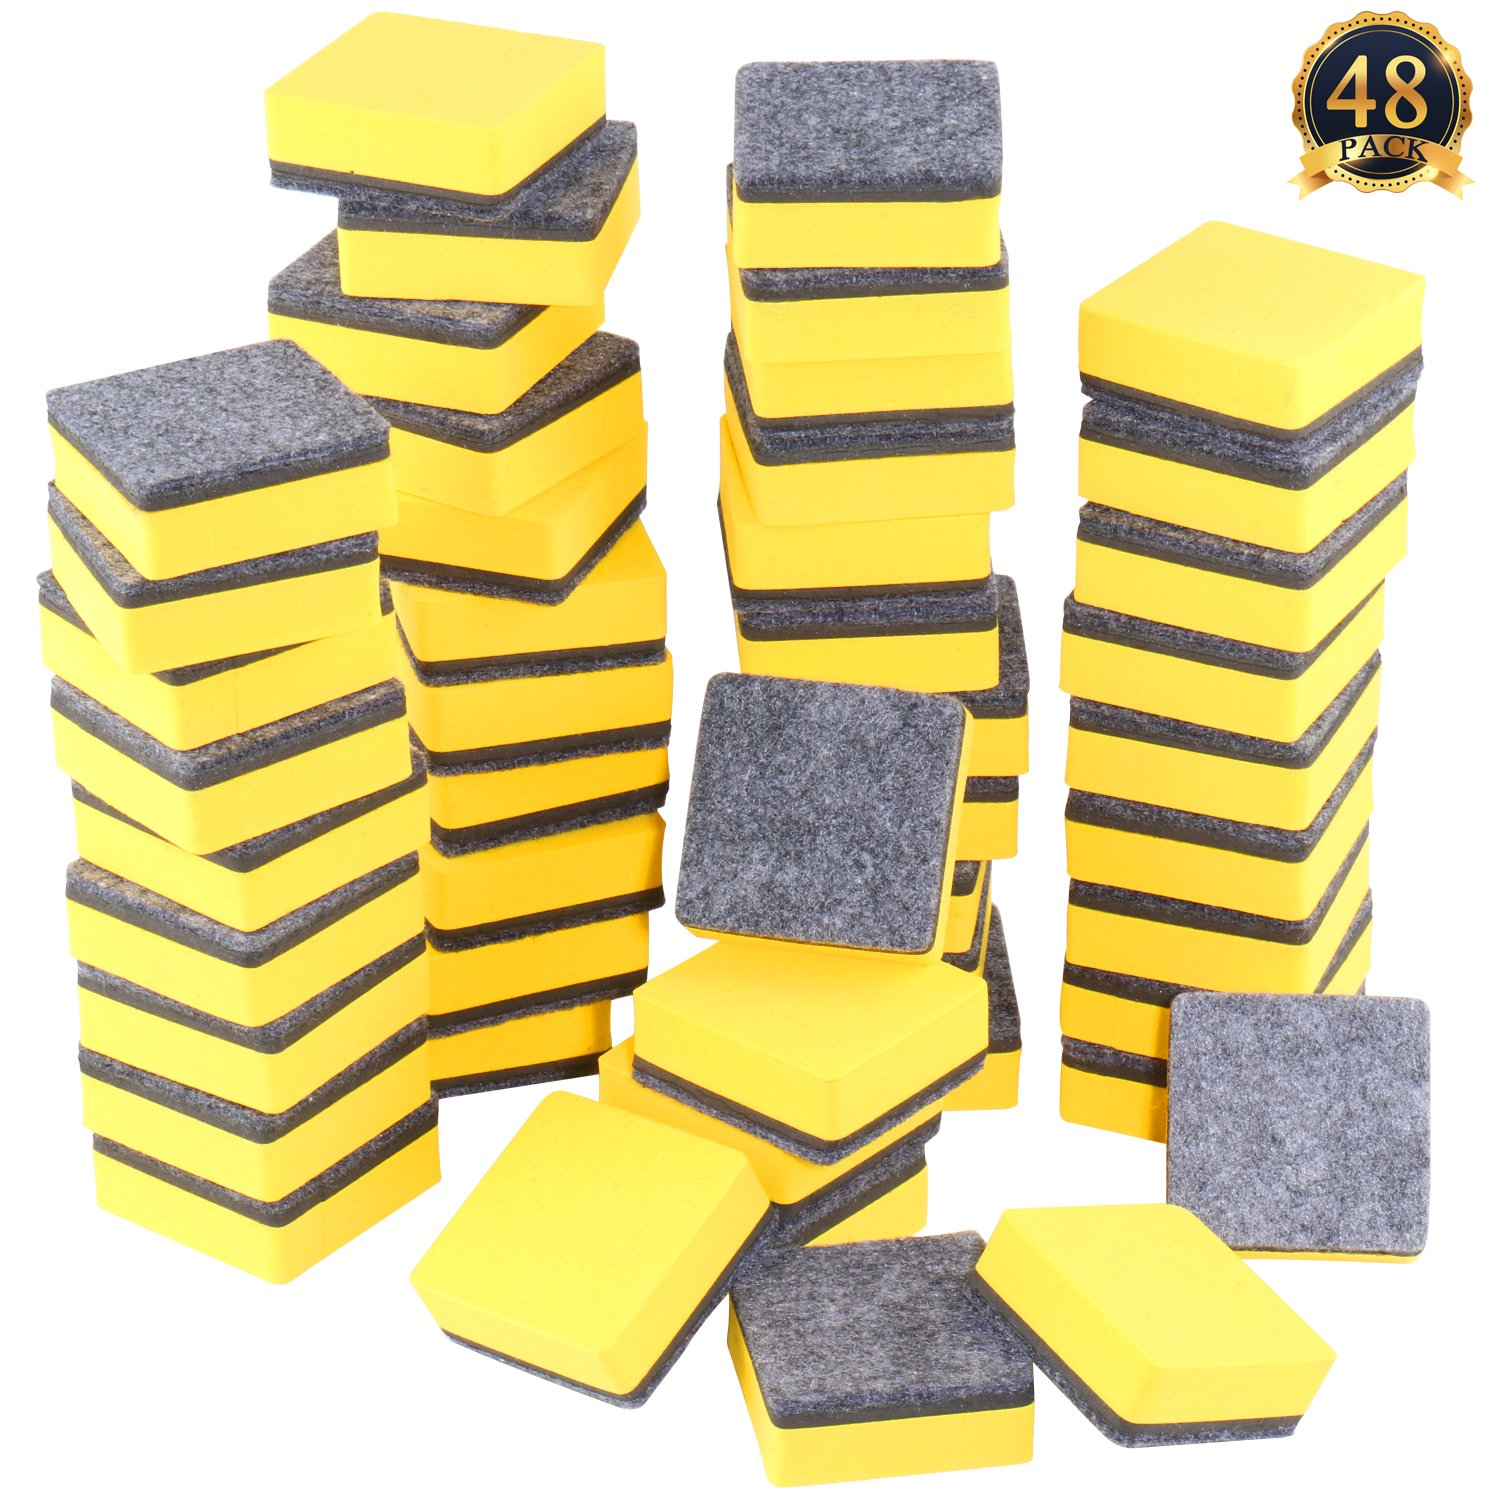 SUBANG 48 Pack Magnetic Whiteboard Eraser Magnetic Dry Erasers Bulk Chalkboard Cleansers Wiper for Kids, Home, School, and Office (Yellow, 2 x 2 inch)